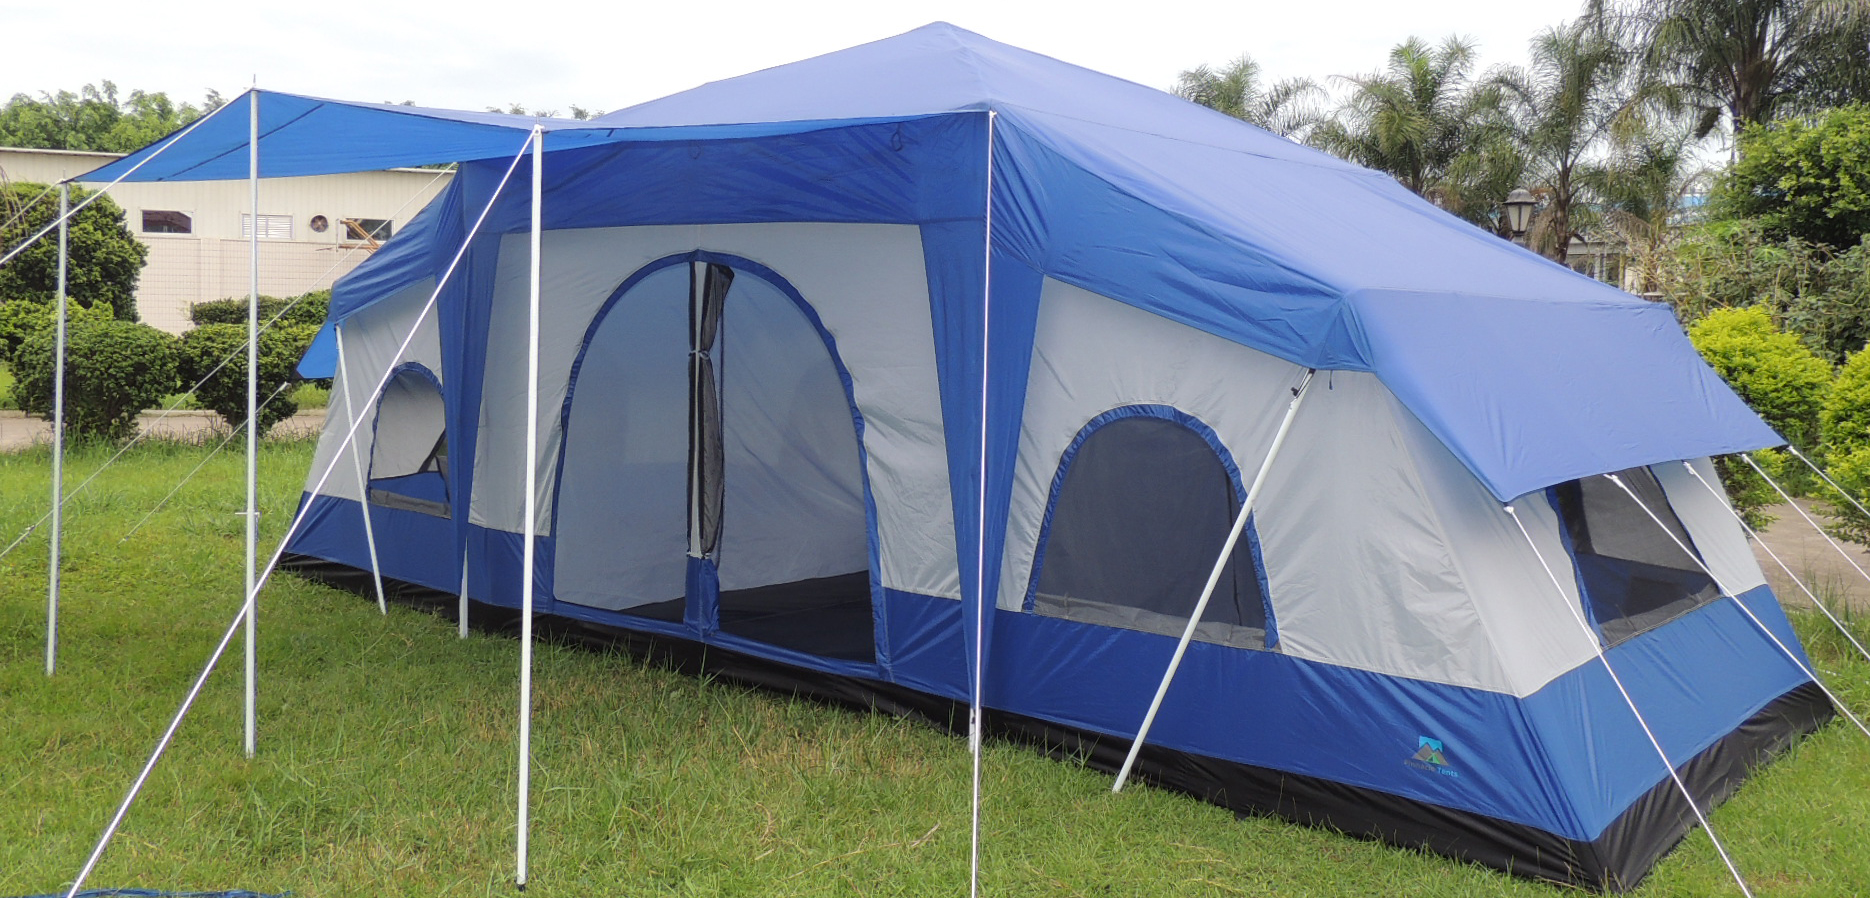 Cabin Tent - 4 Room : two bedroom tents - memphite.com